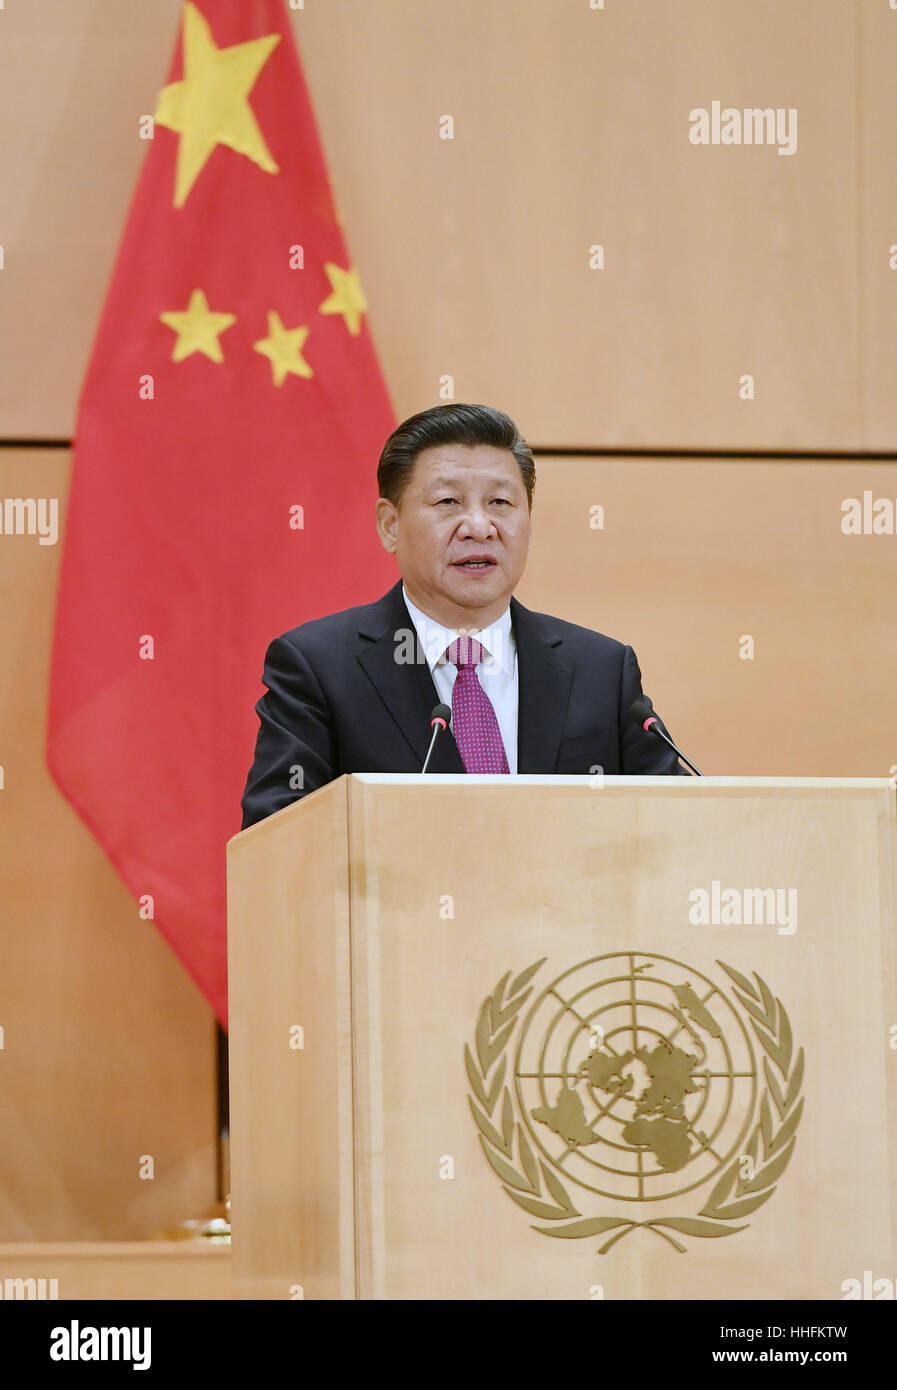 (170118) -- GENEVA, Jan. 18, 2017 (Xinhua) -- Chinese President Xi Jinping delivers a keynote speech at the United - Stock Image